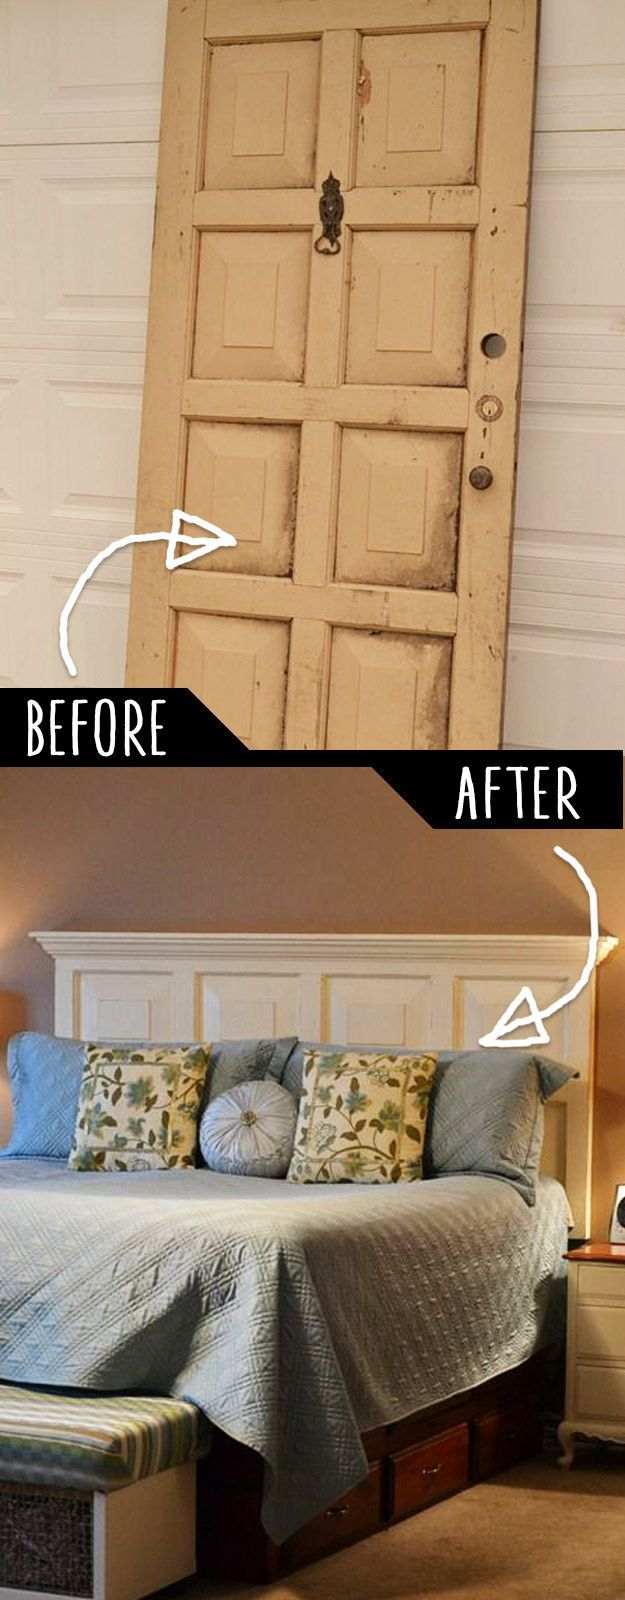 Best 25+ Headboards ideas on Pinterest | Head boards diy ...